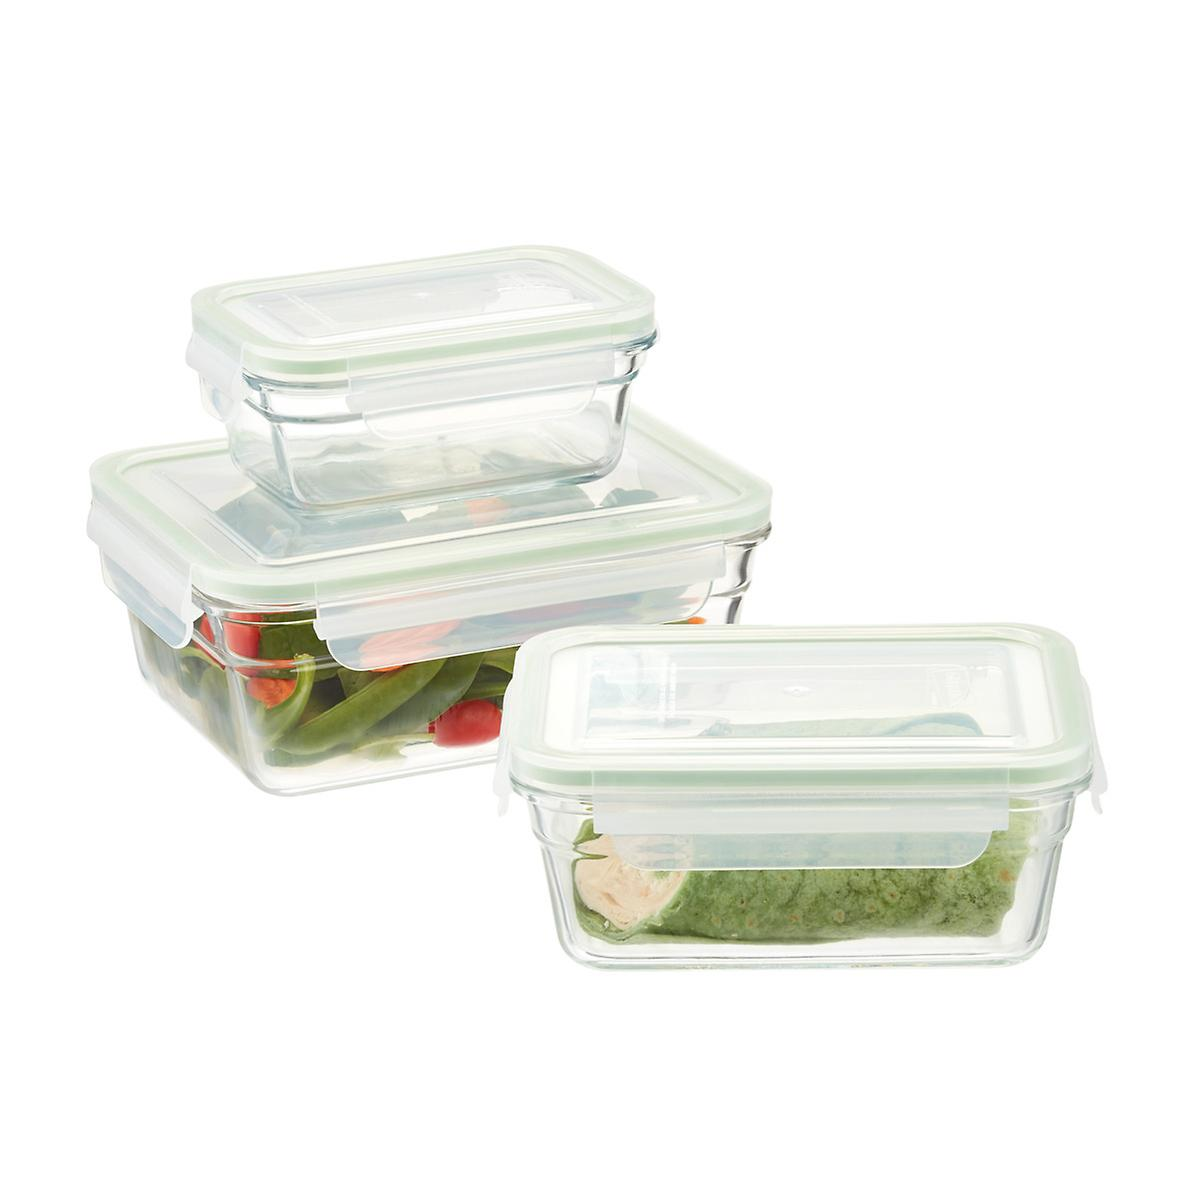 rectangular glass food storage containers